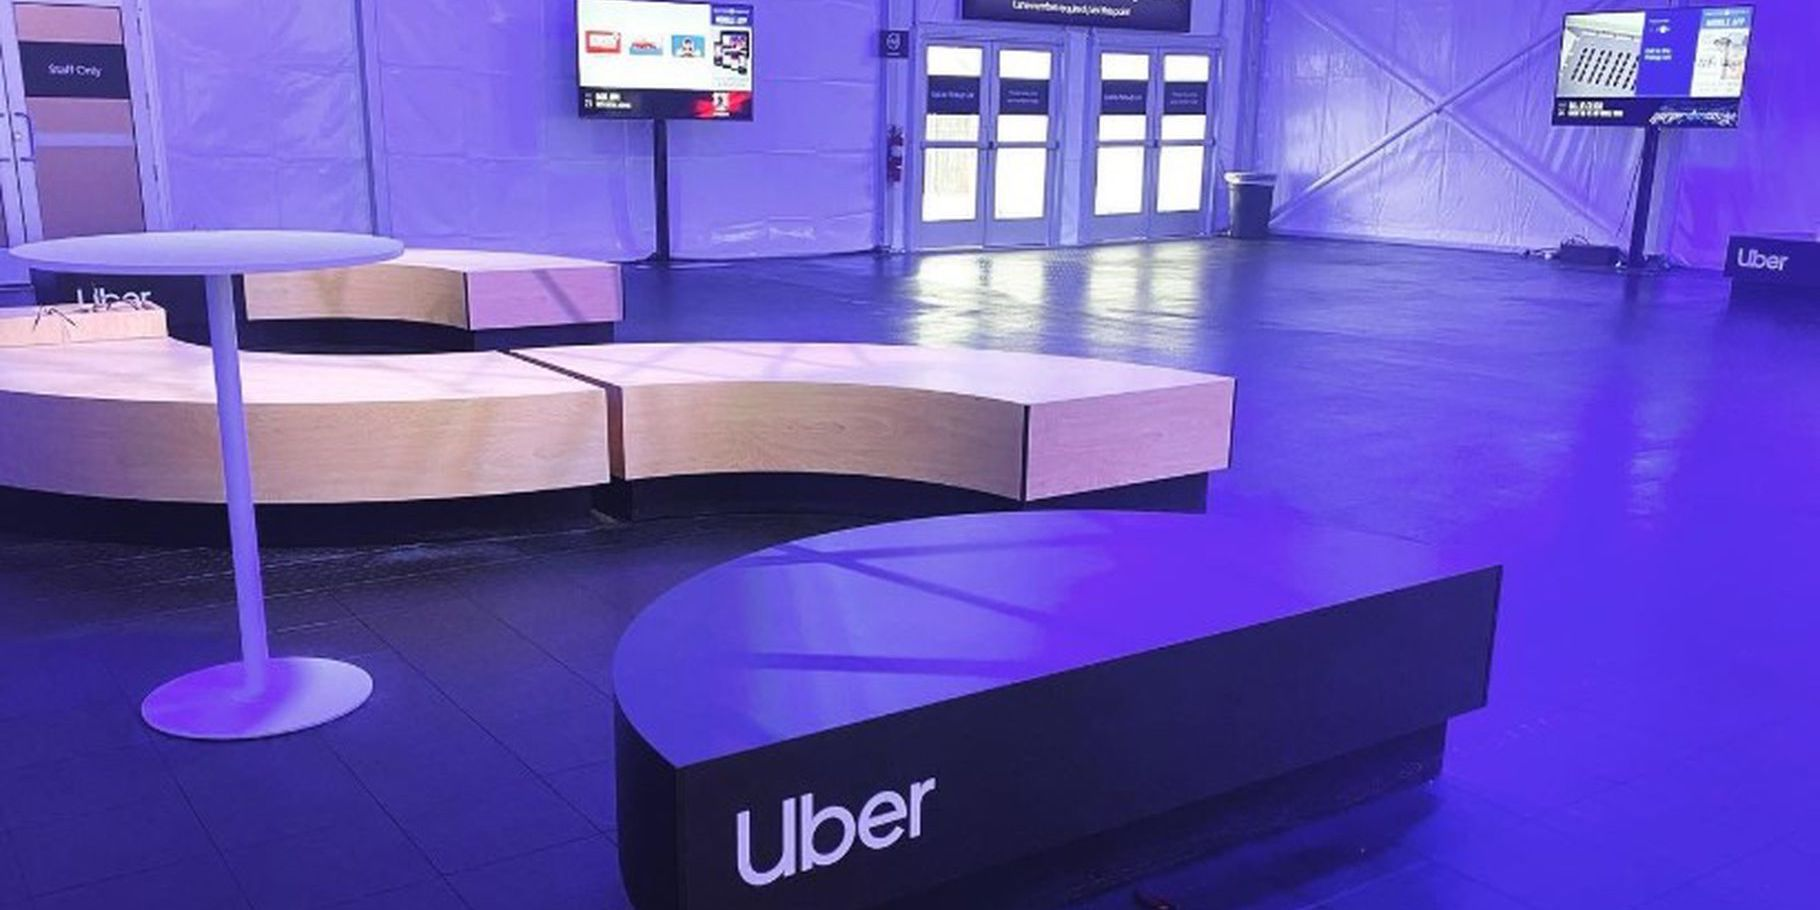 United Center Opens Uber Zone